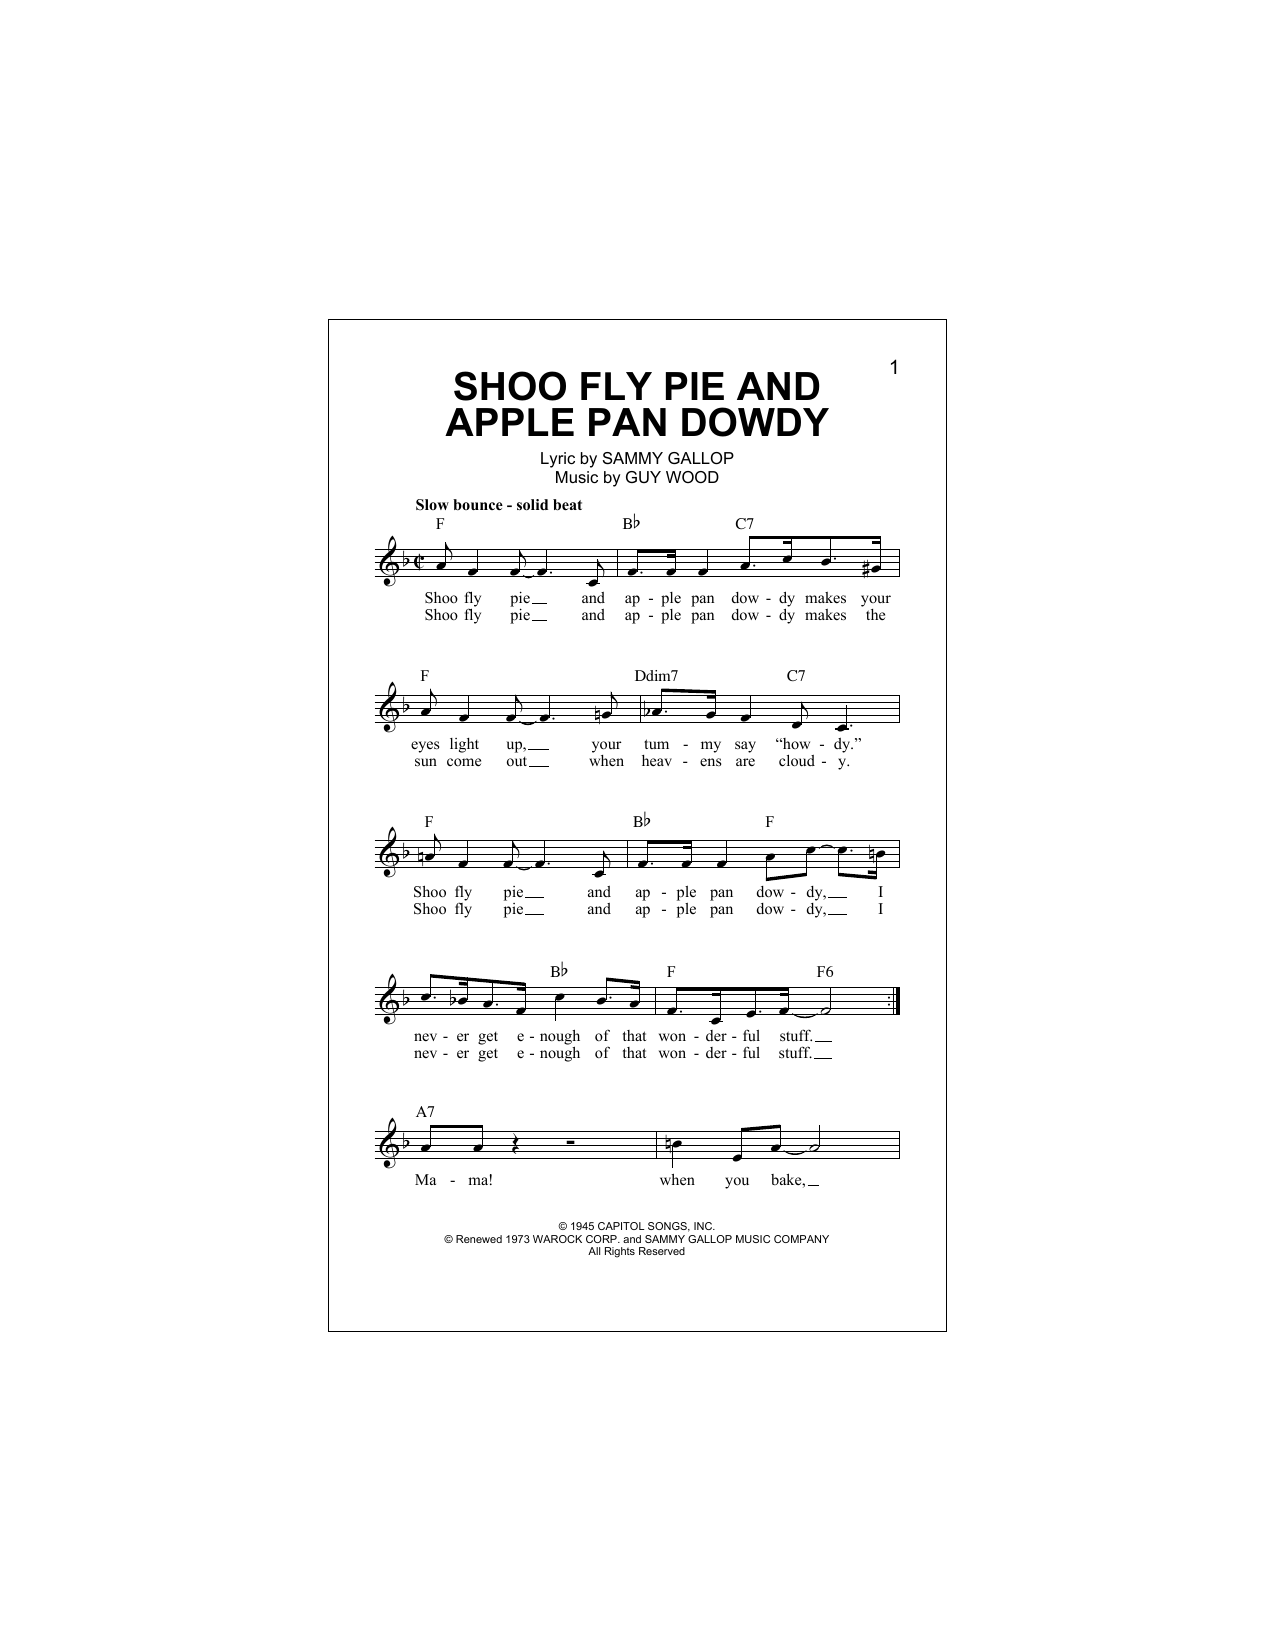 Guy Wood Shoo Fly Pie And Apple Pan Dowdy sheet music notes and chords. Download Printable PDF.